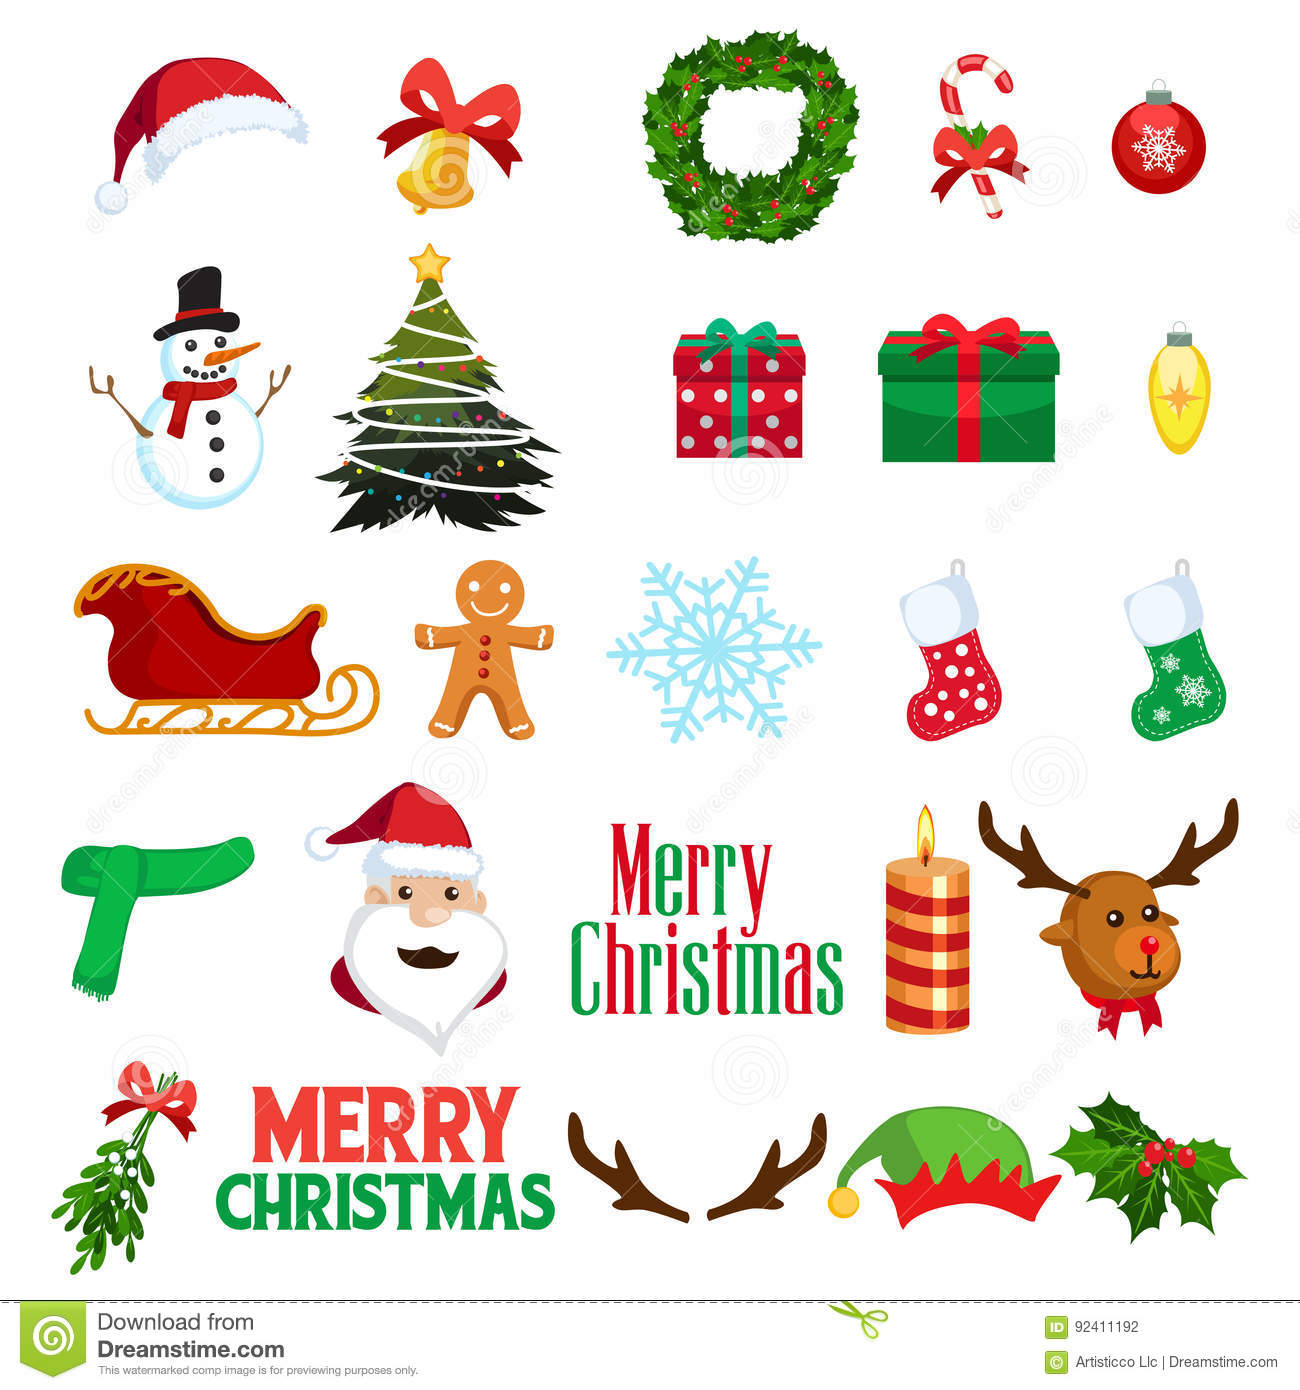 Christmas Winter Clipart Icons Stock Vector Illustration Of Gift Season 92411192